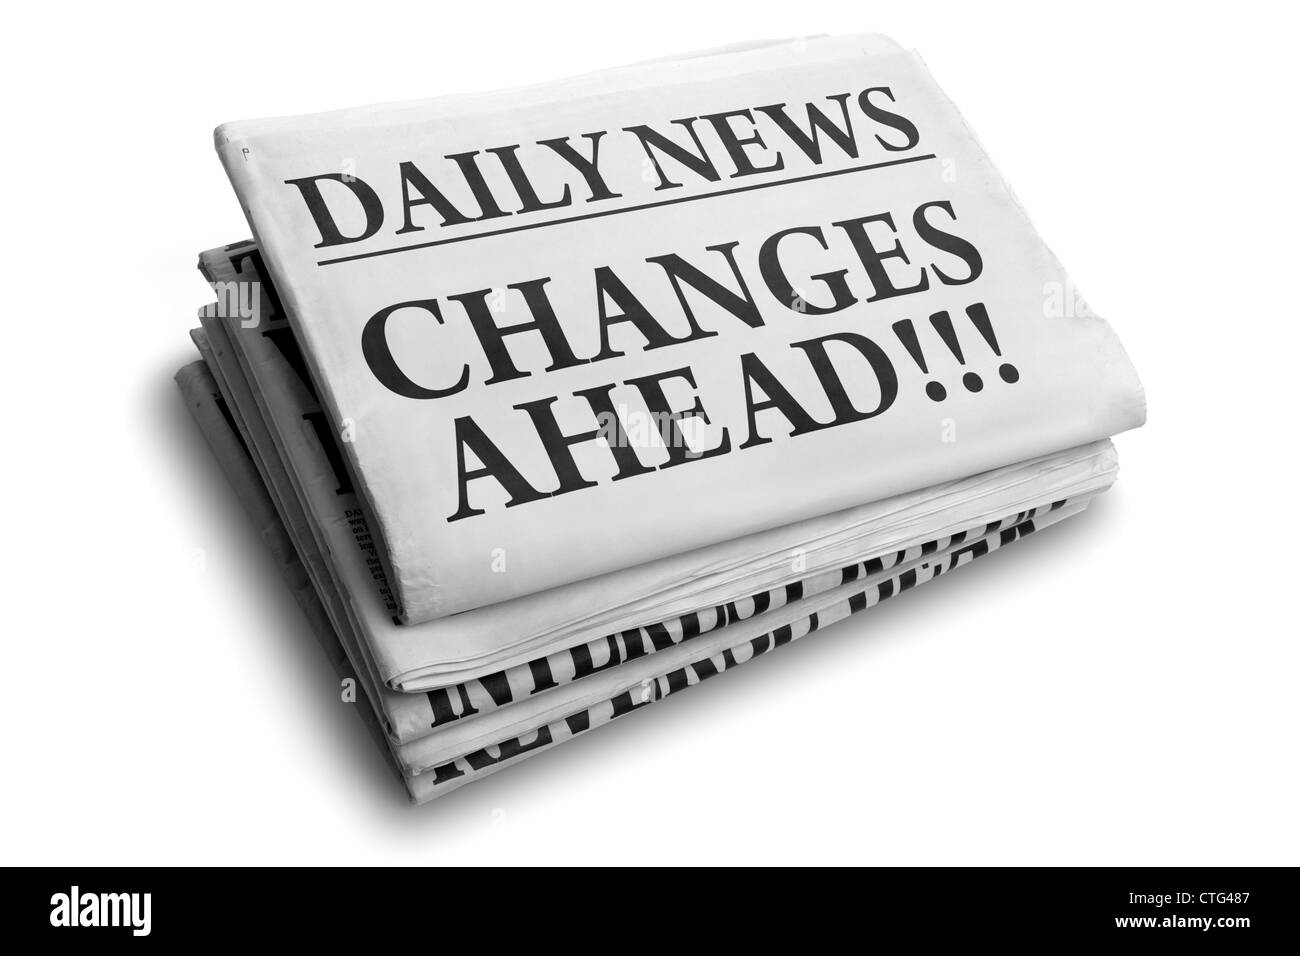 Changes ahead daily newspaper headline - Stock Image